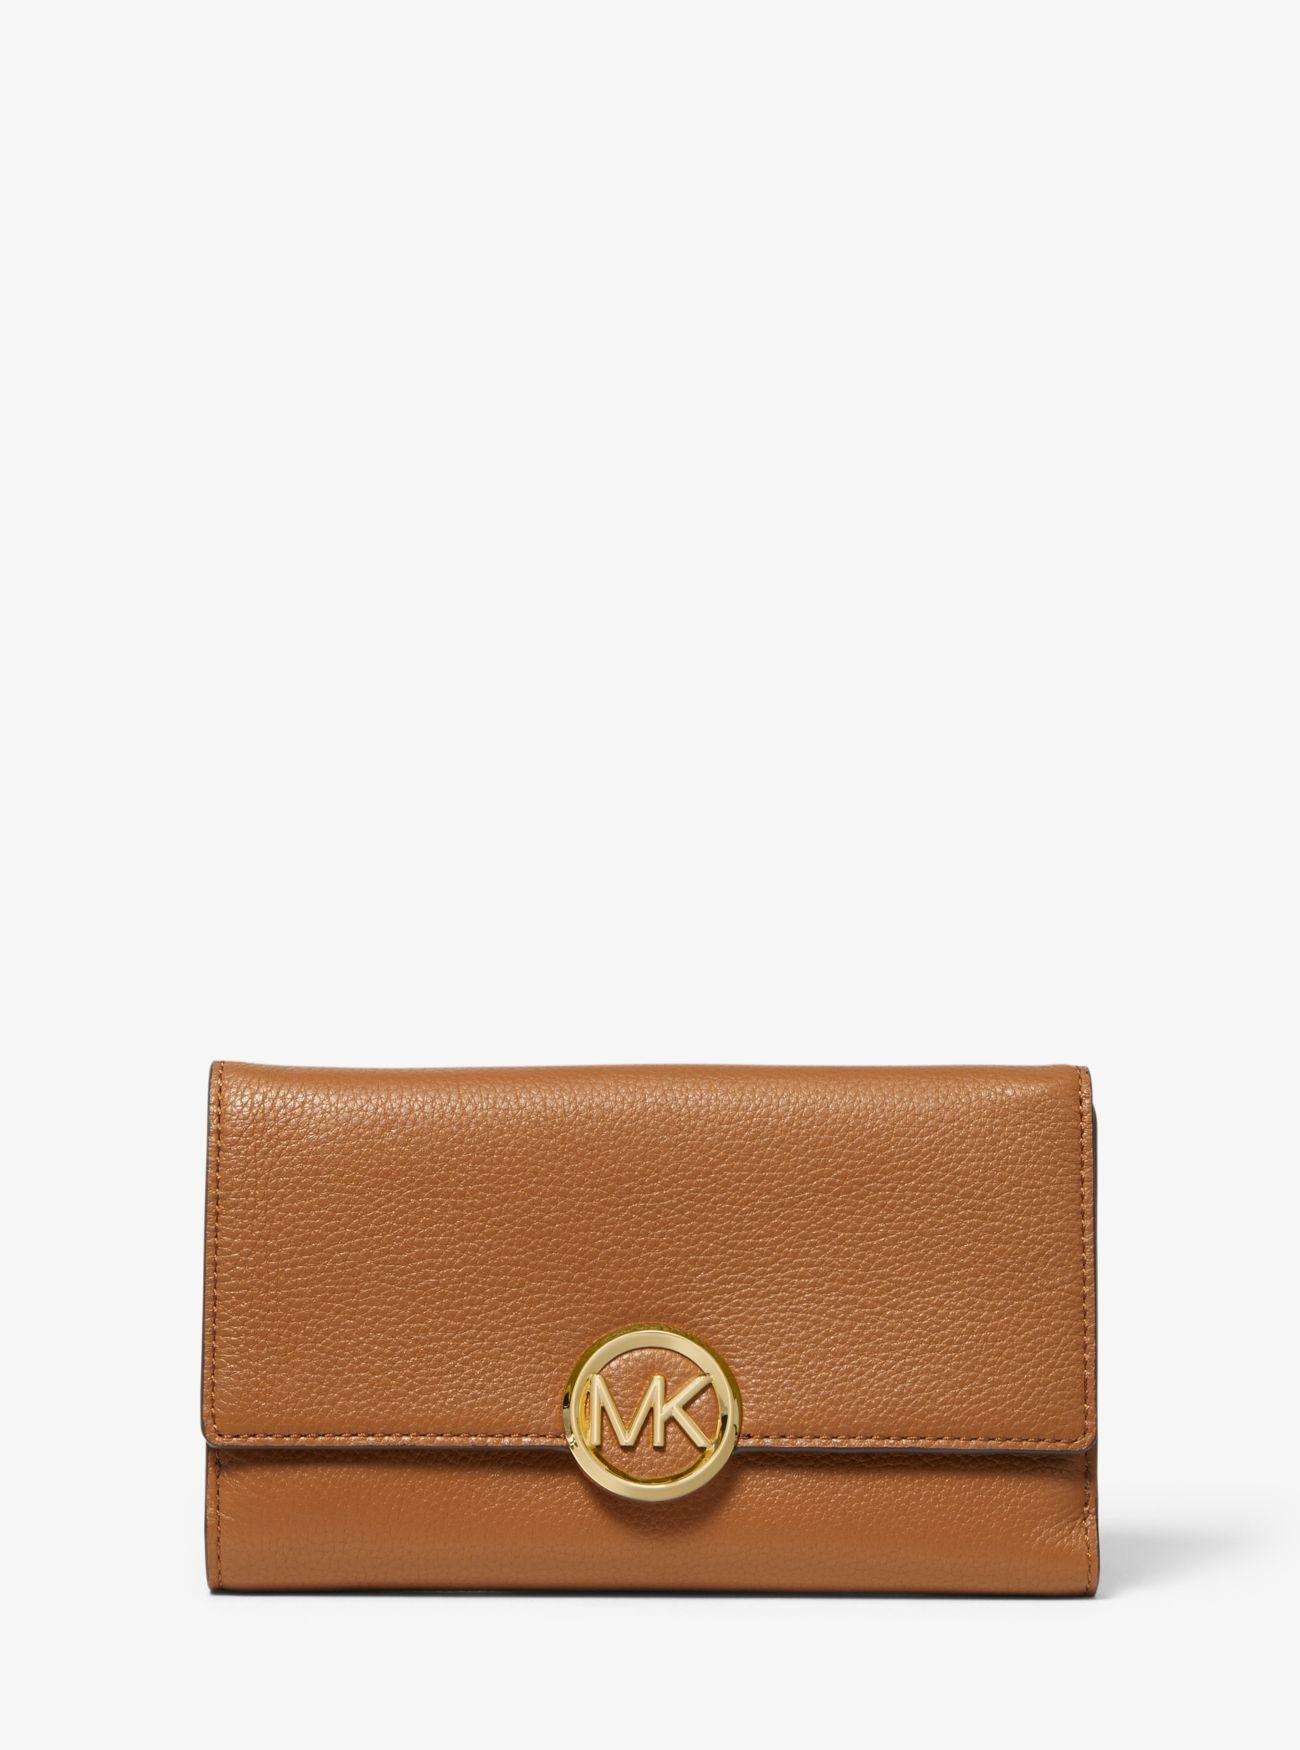 071243696e97 Michael Kors Lillie Pebbled Leather Wallet in Brown - Lyst